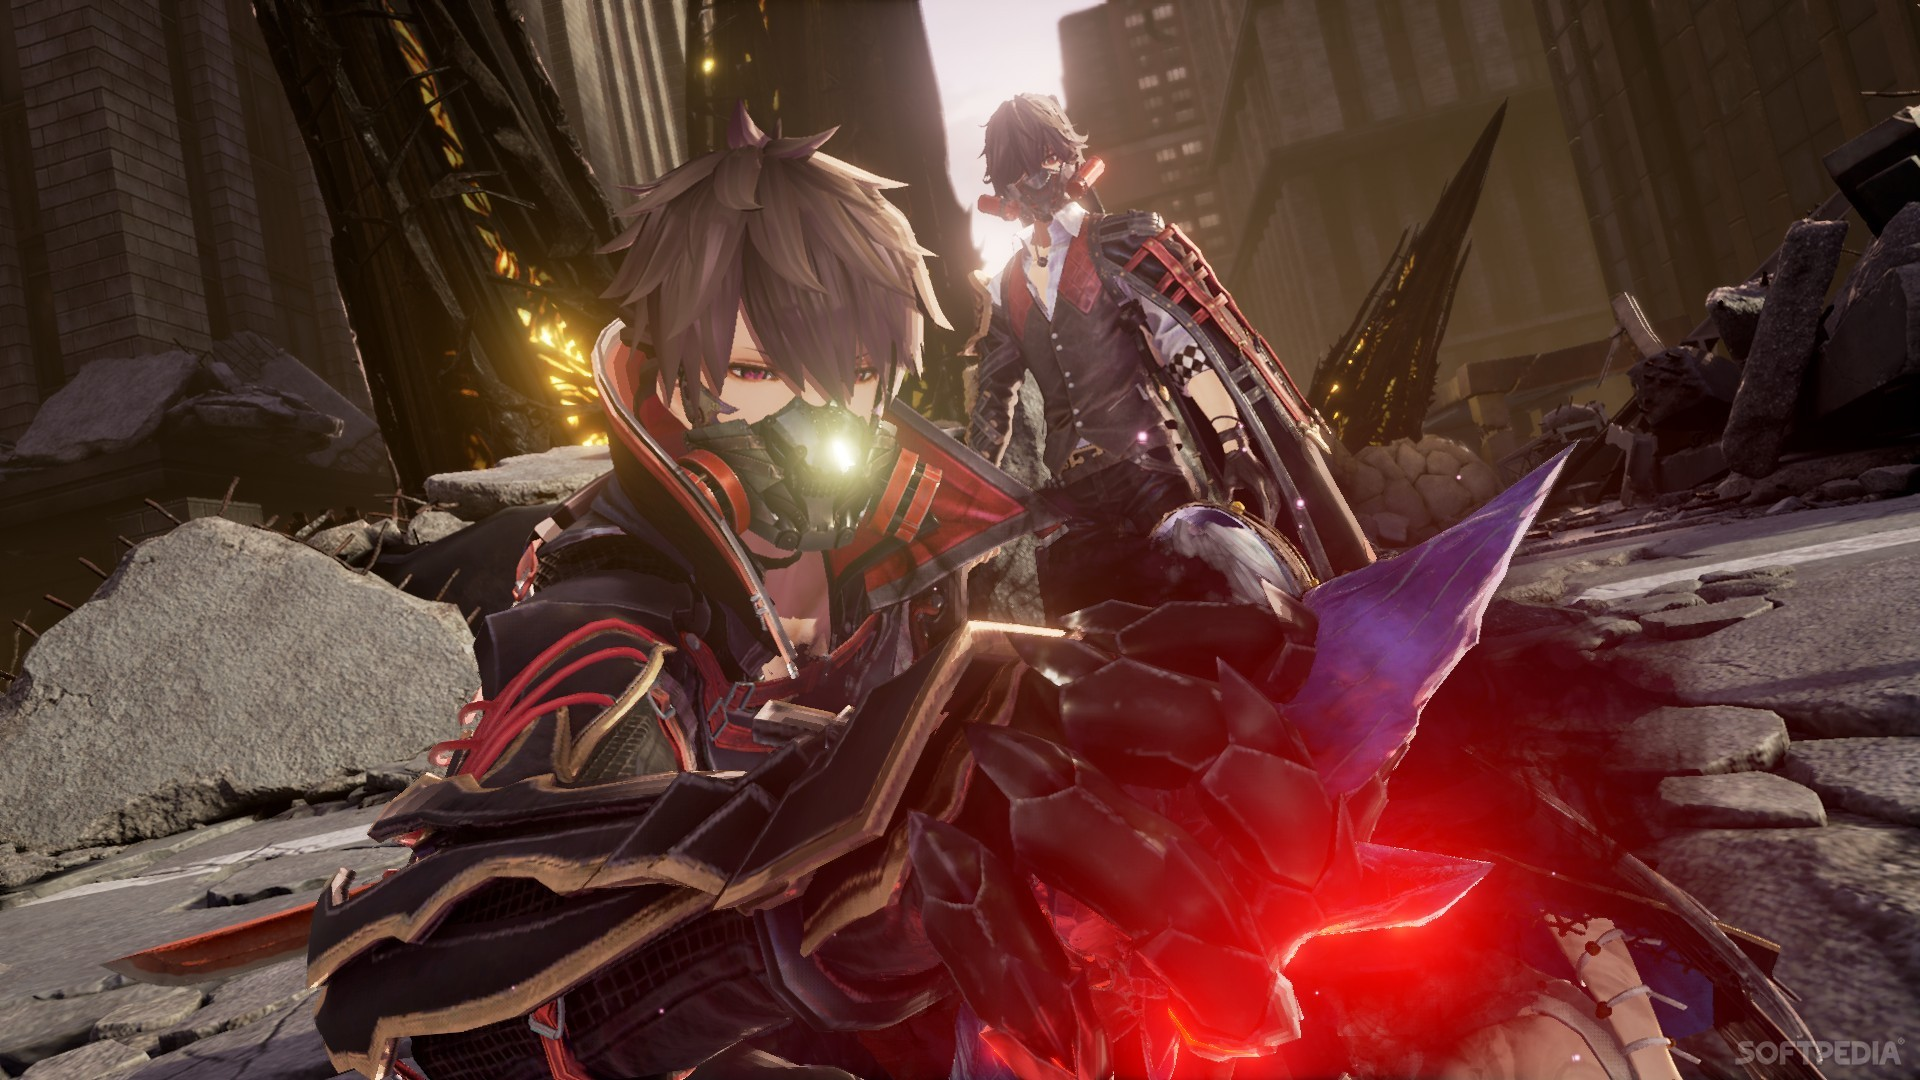 Code Vein Hands On Gameplay Video And First Impressions